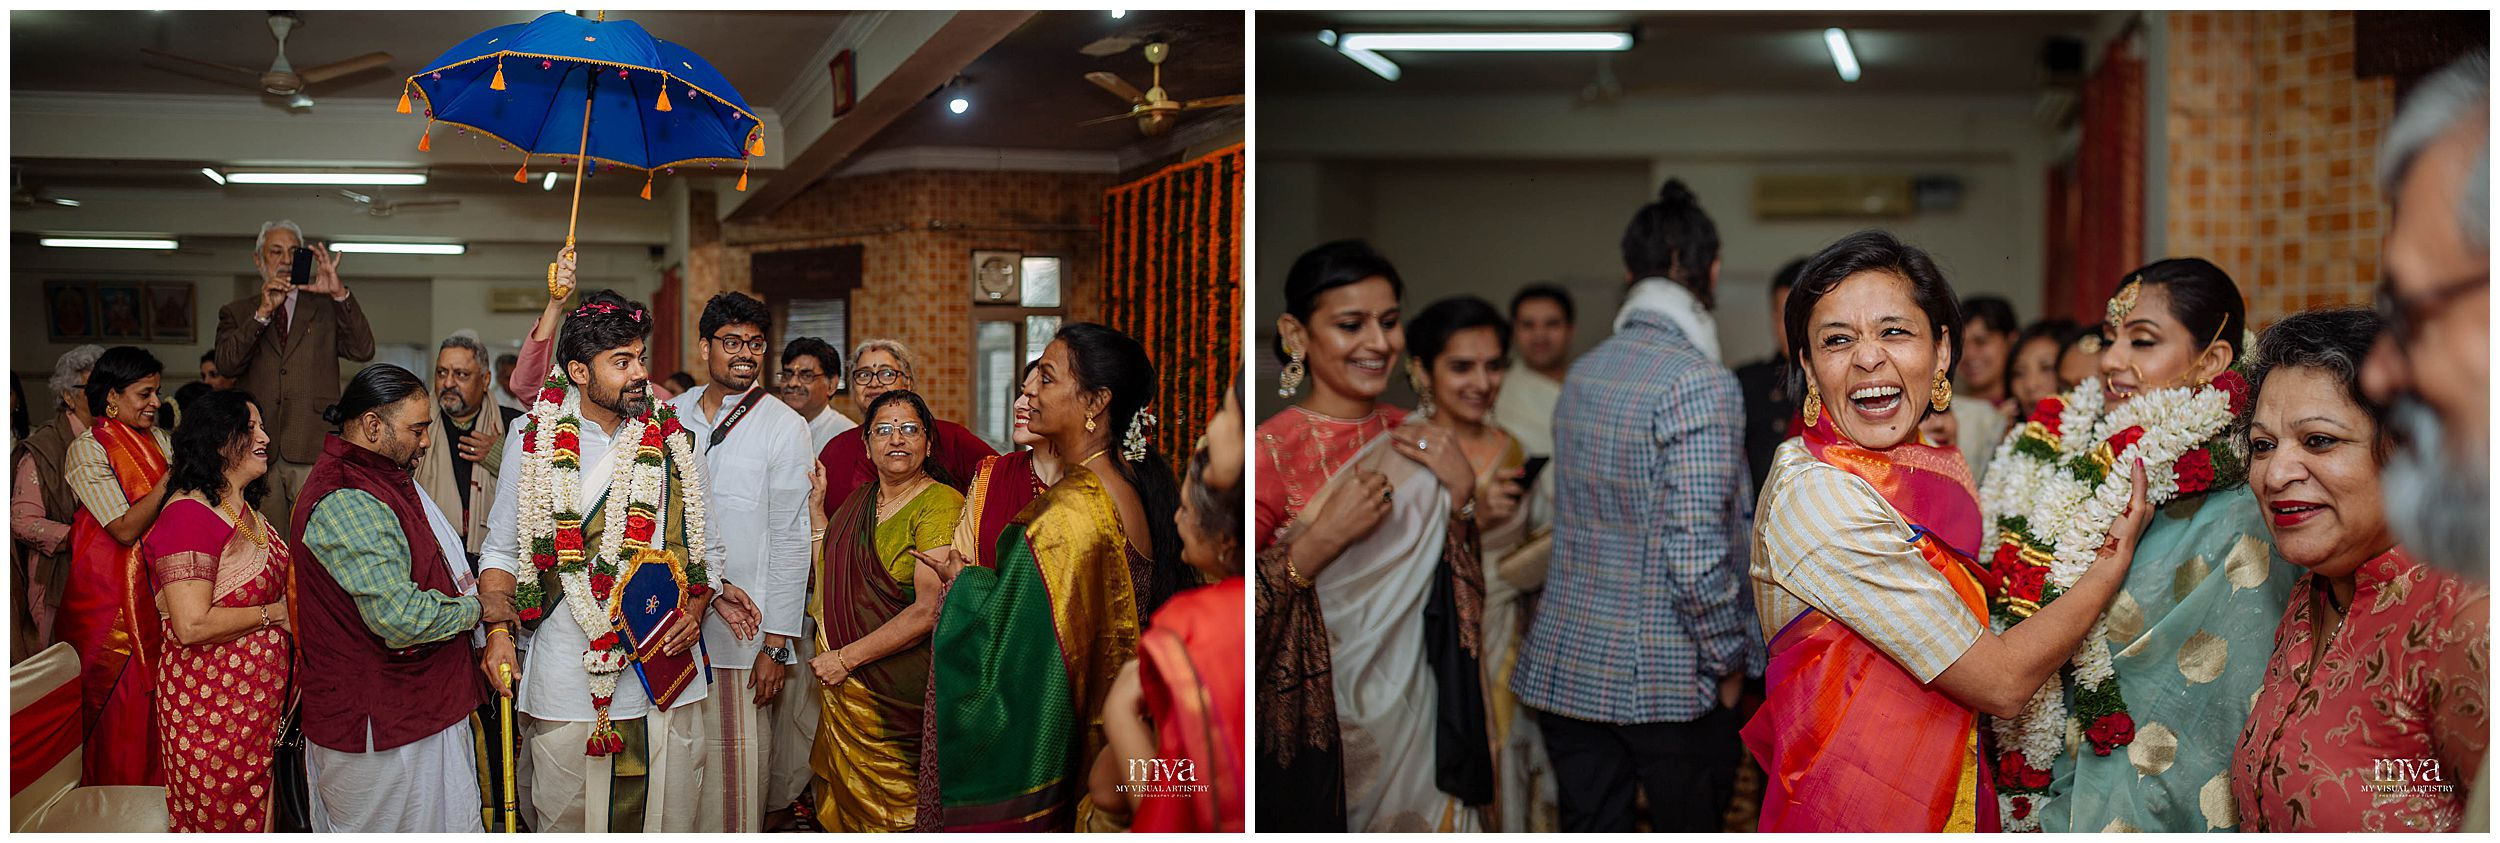 SAHIBA_KARTHIK_MYVISUALARTISTRY_WEDDING_PHOTOGRAPHY_MVA_KERALA_GURGAON_0034.jpg